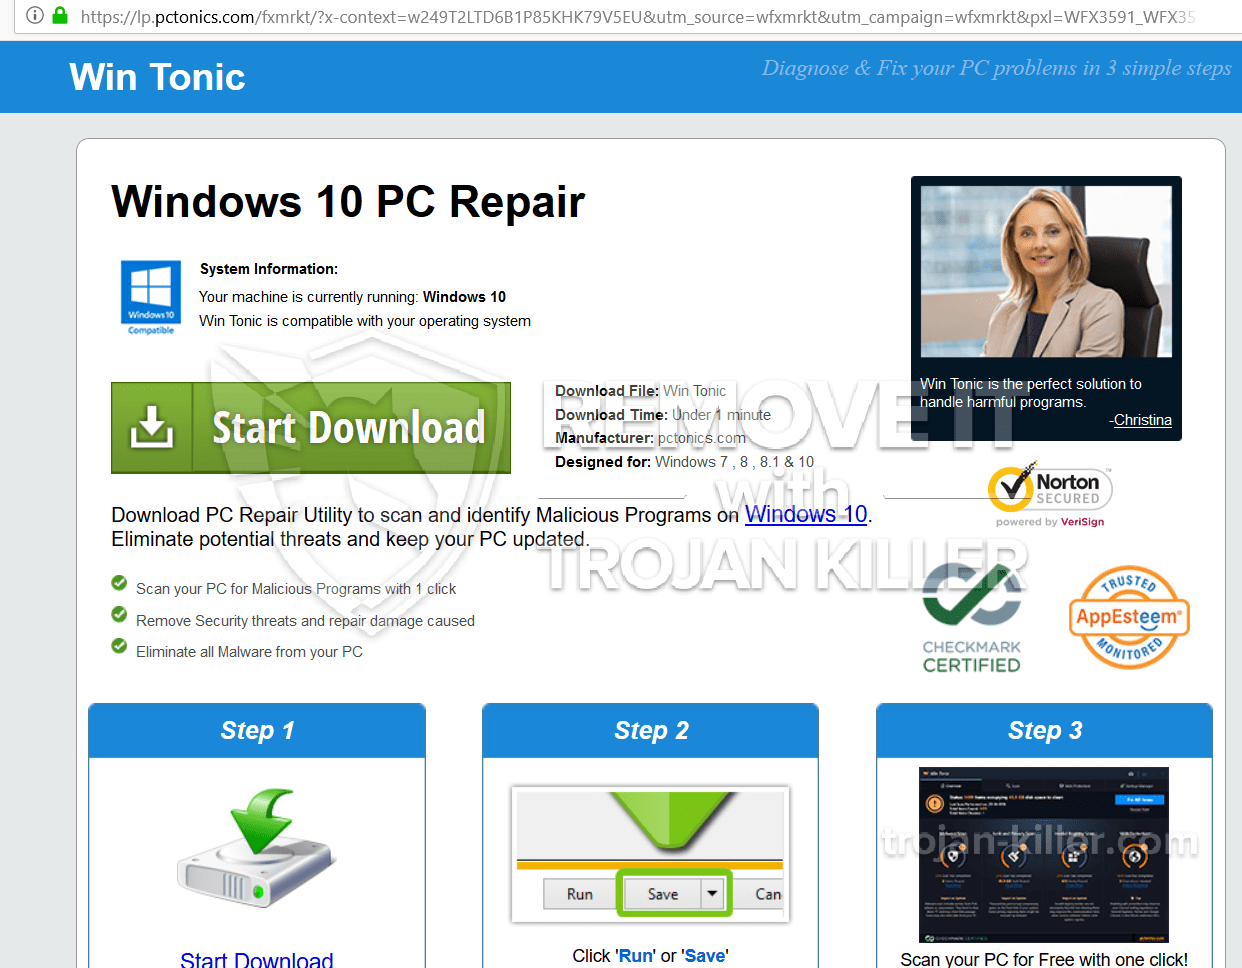 Win Tonic phony optimization tool (removal guide)  - Trojan